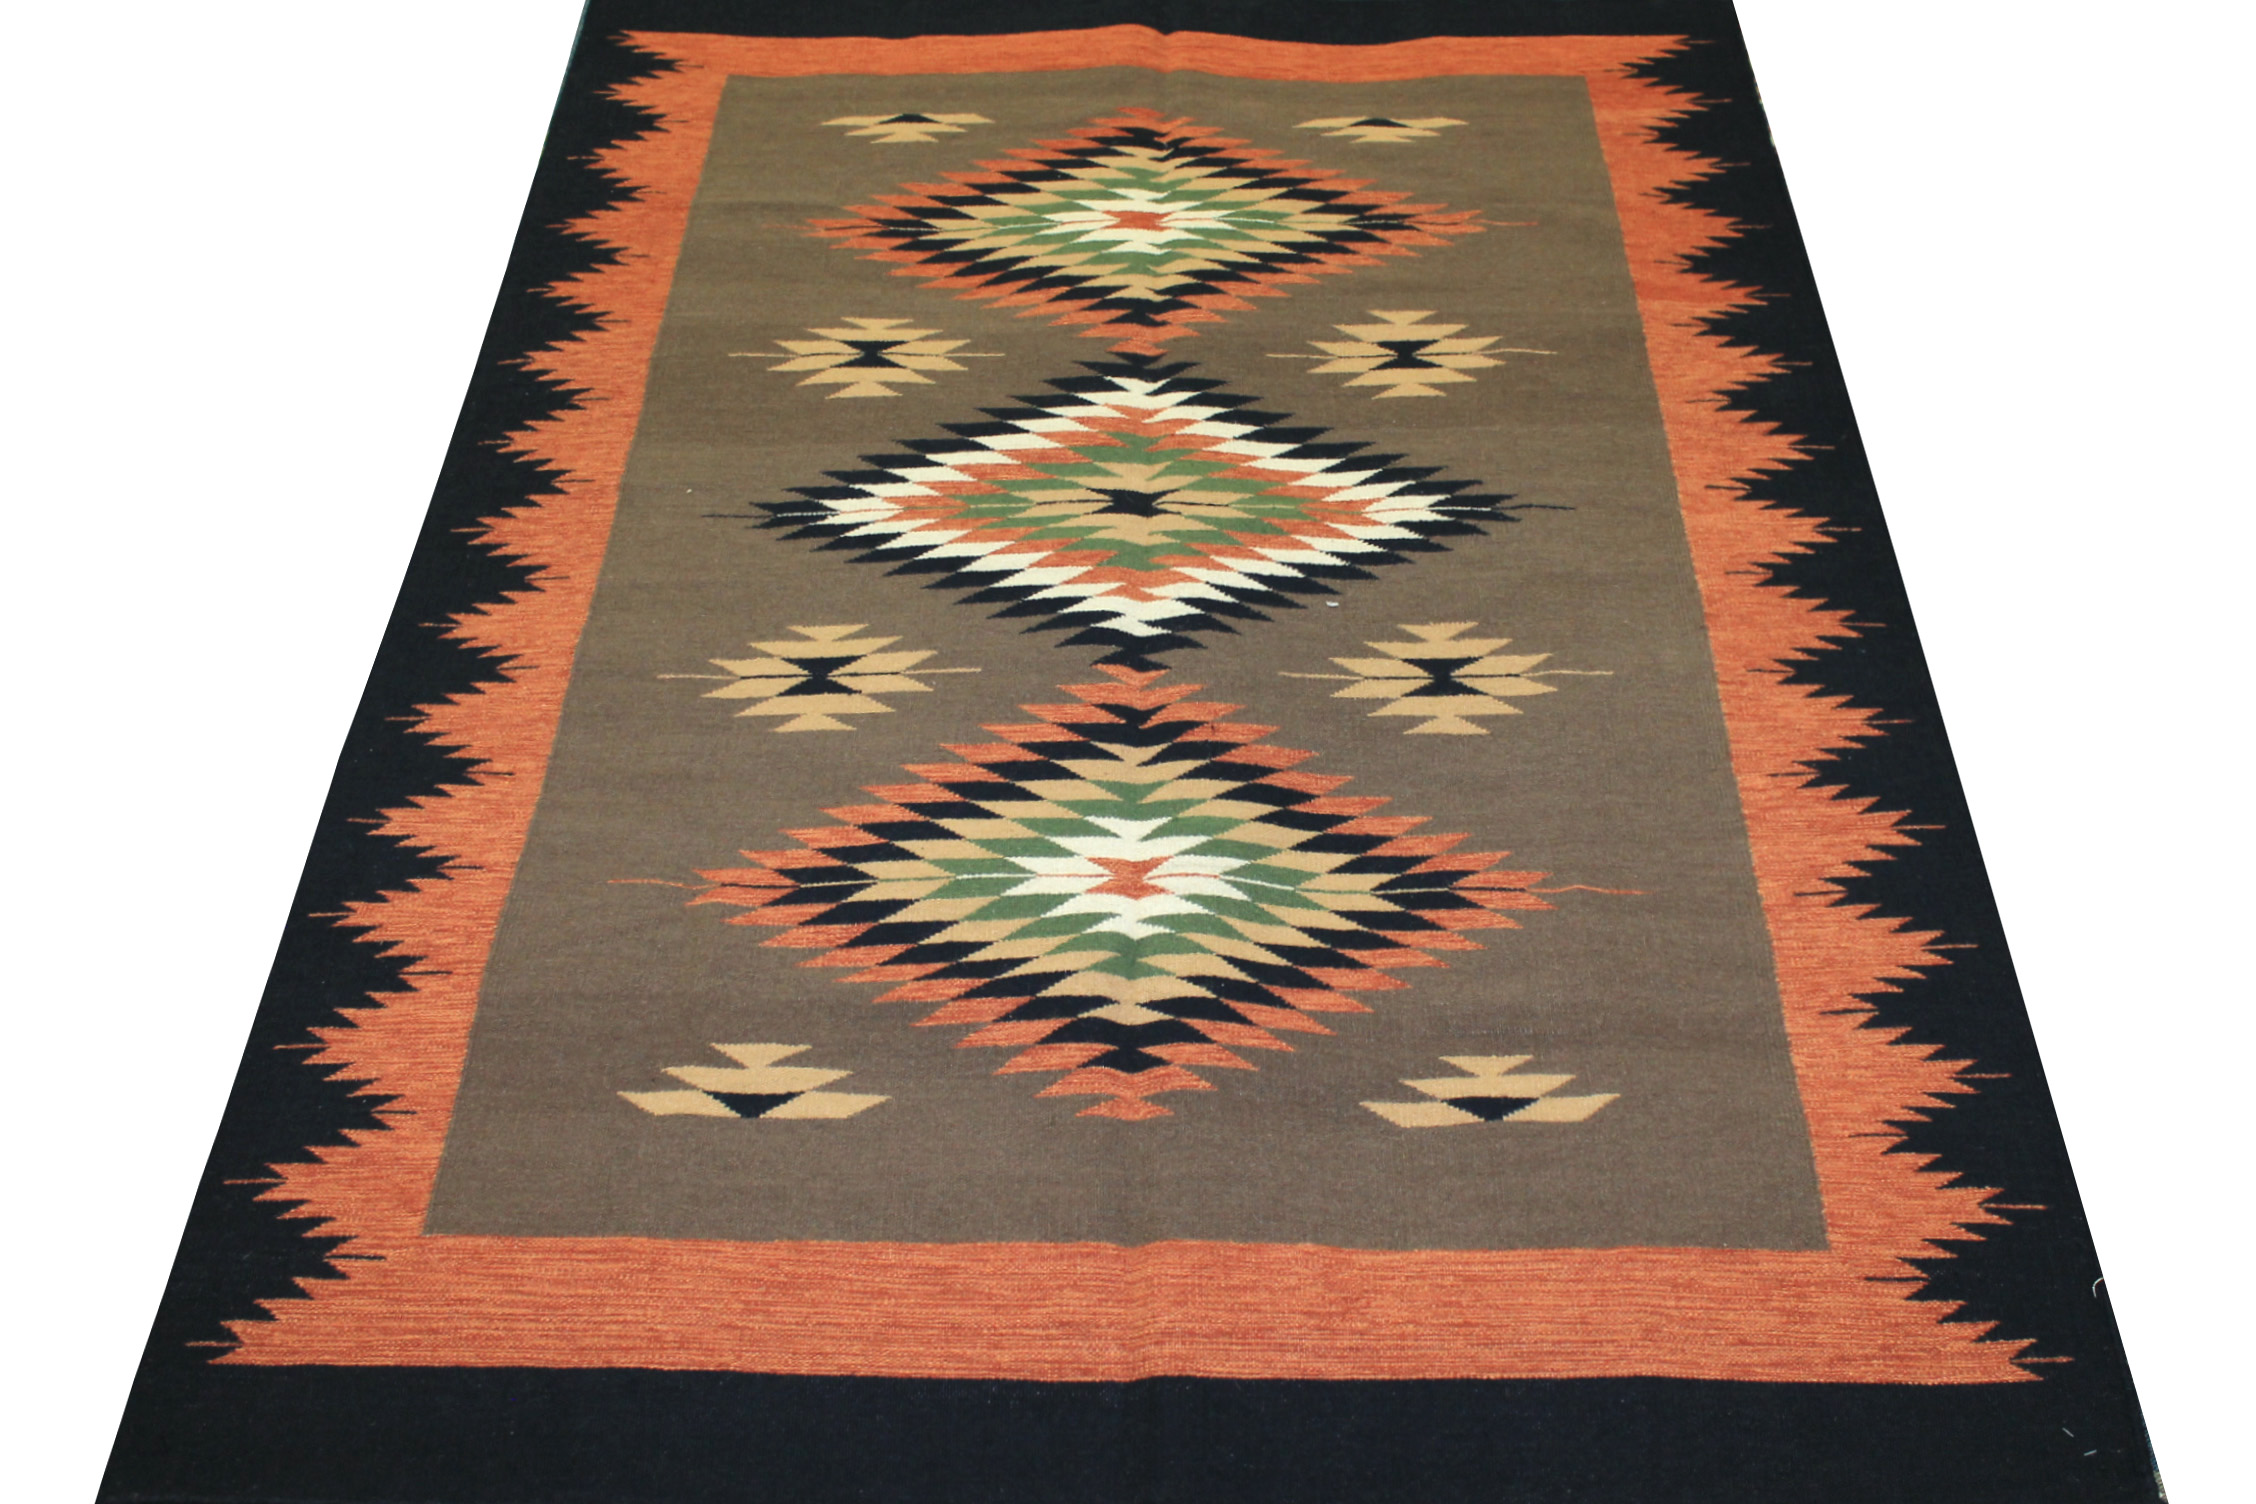 5x7/8 Flat Weave Hand Knotted Wool Area Rug - MR14175